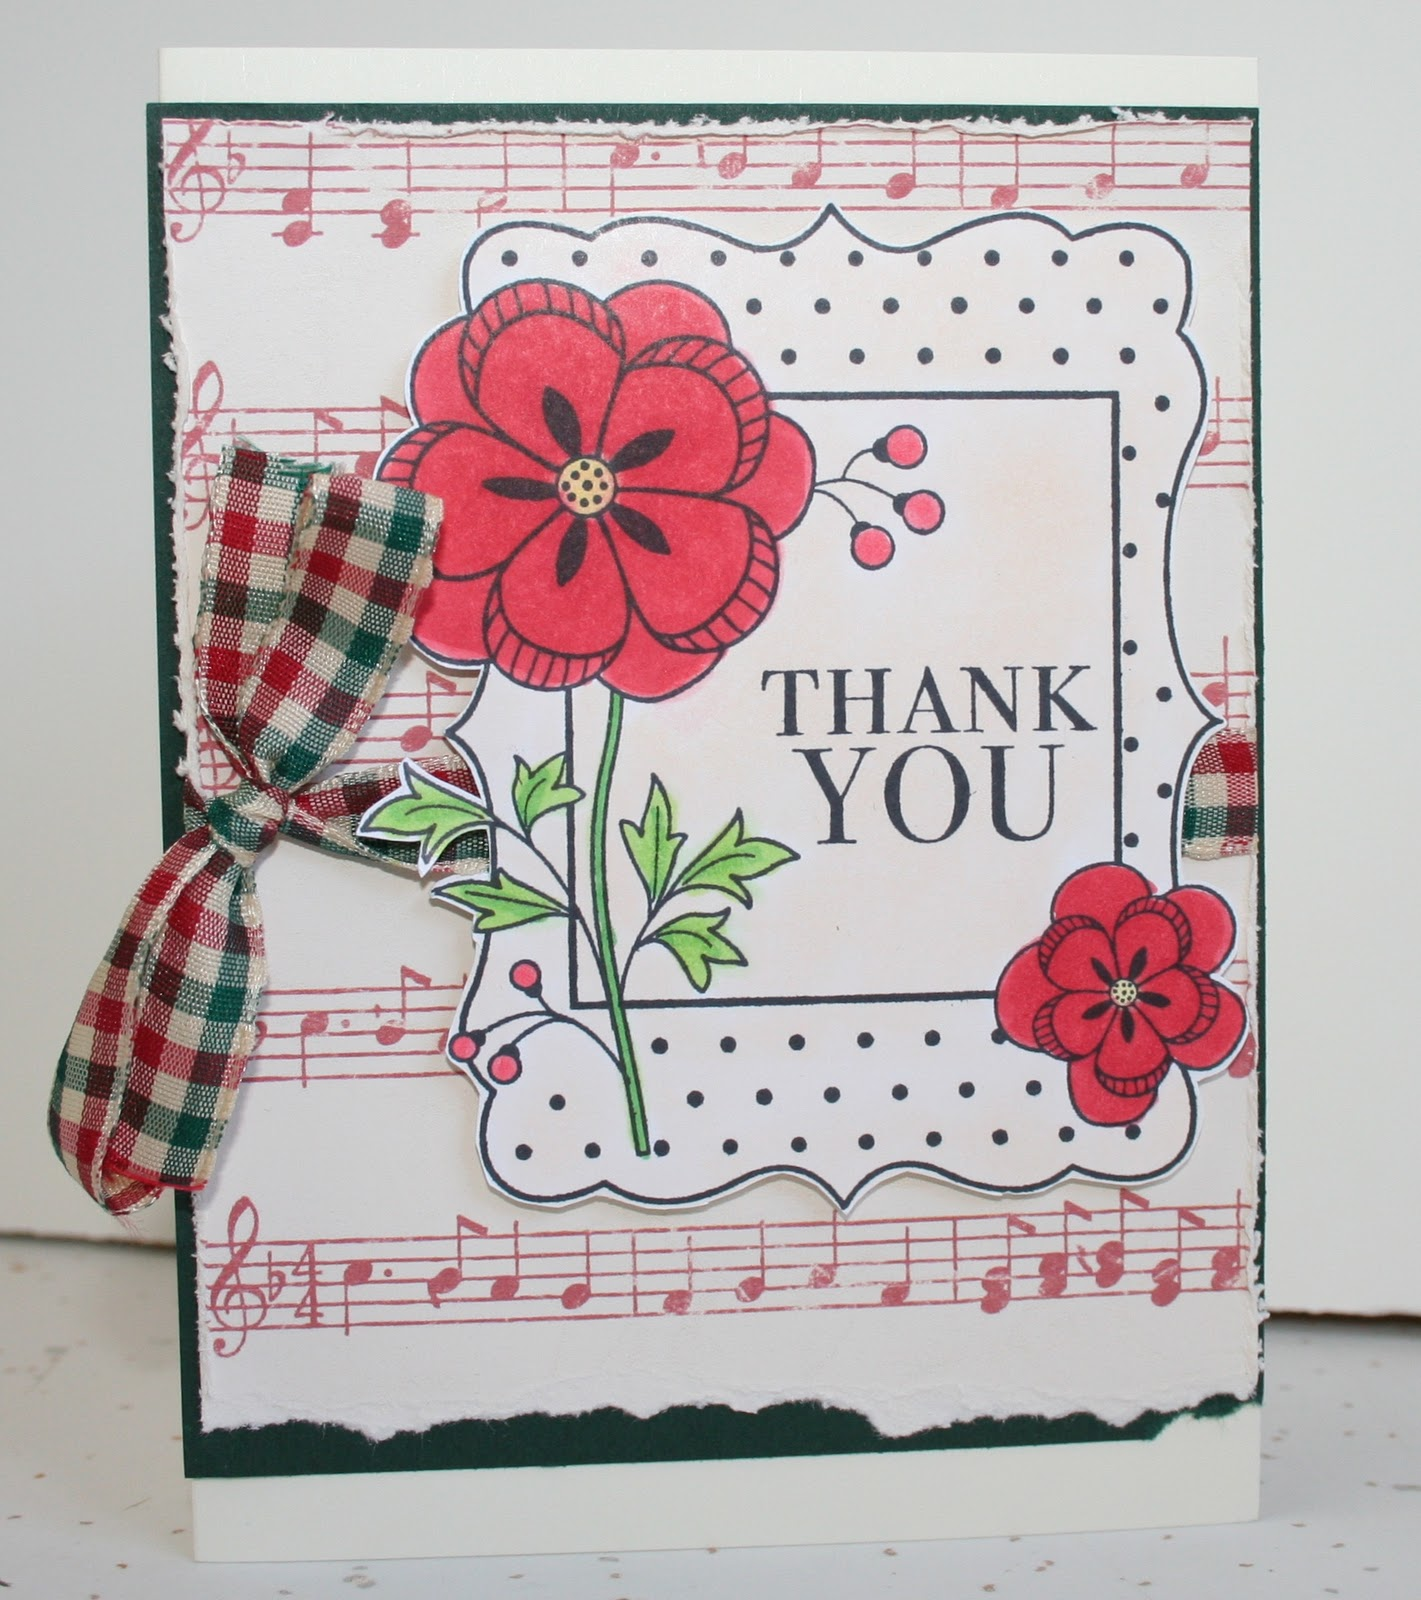 Our nest of 3 thank you card for piano teacher for Michaels arts and crafts virginia beach